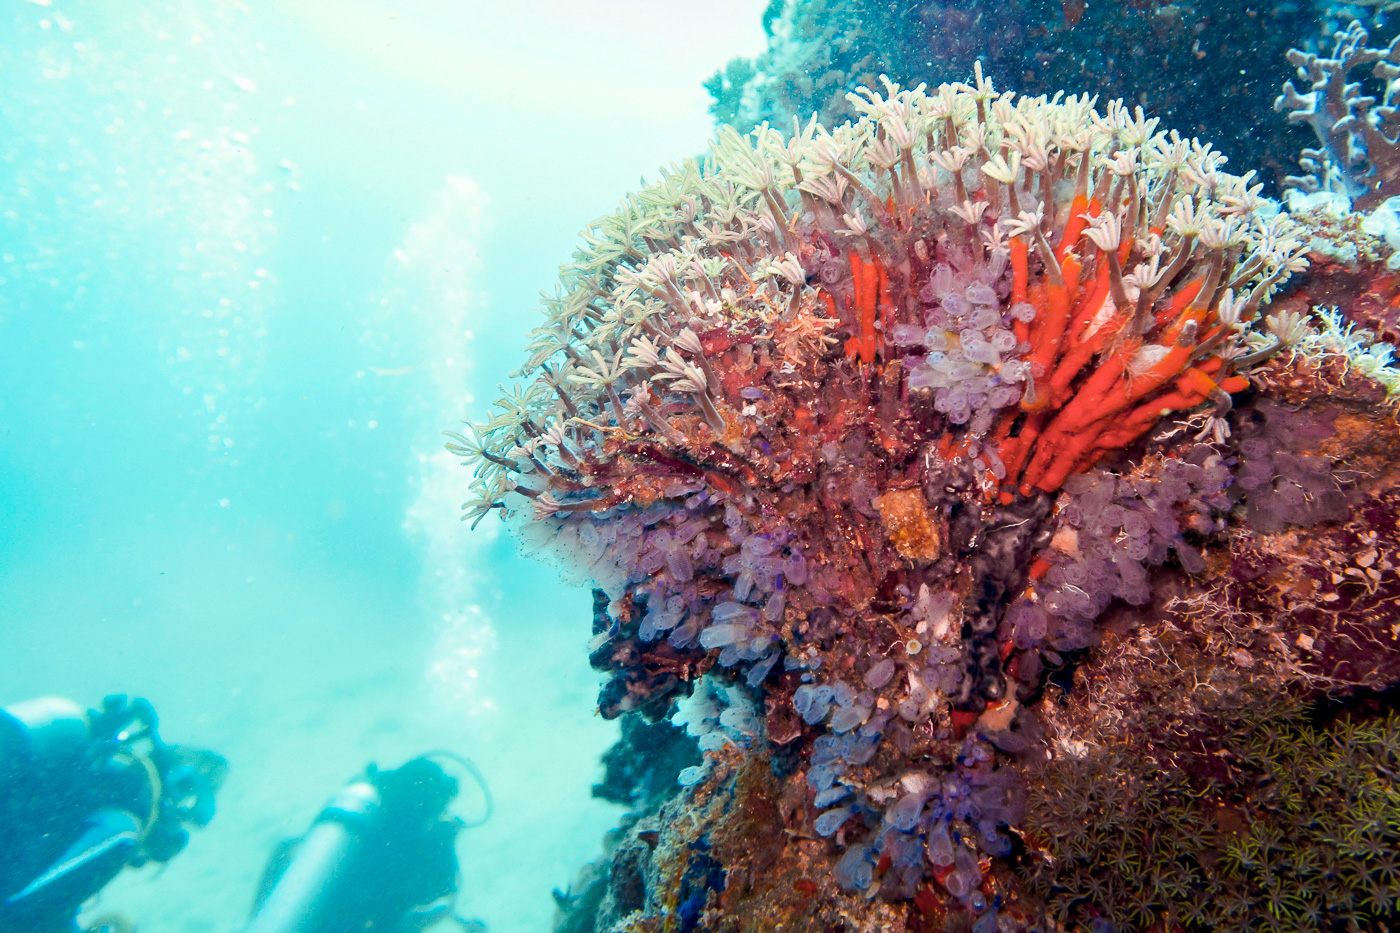 Chapel dive site at Apo Island off of Dauin in the Philippines